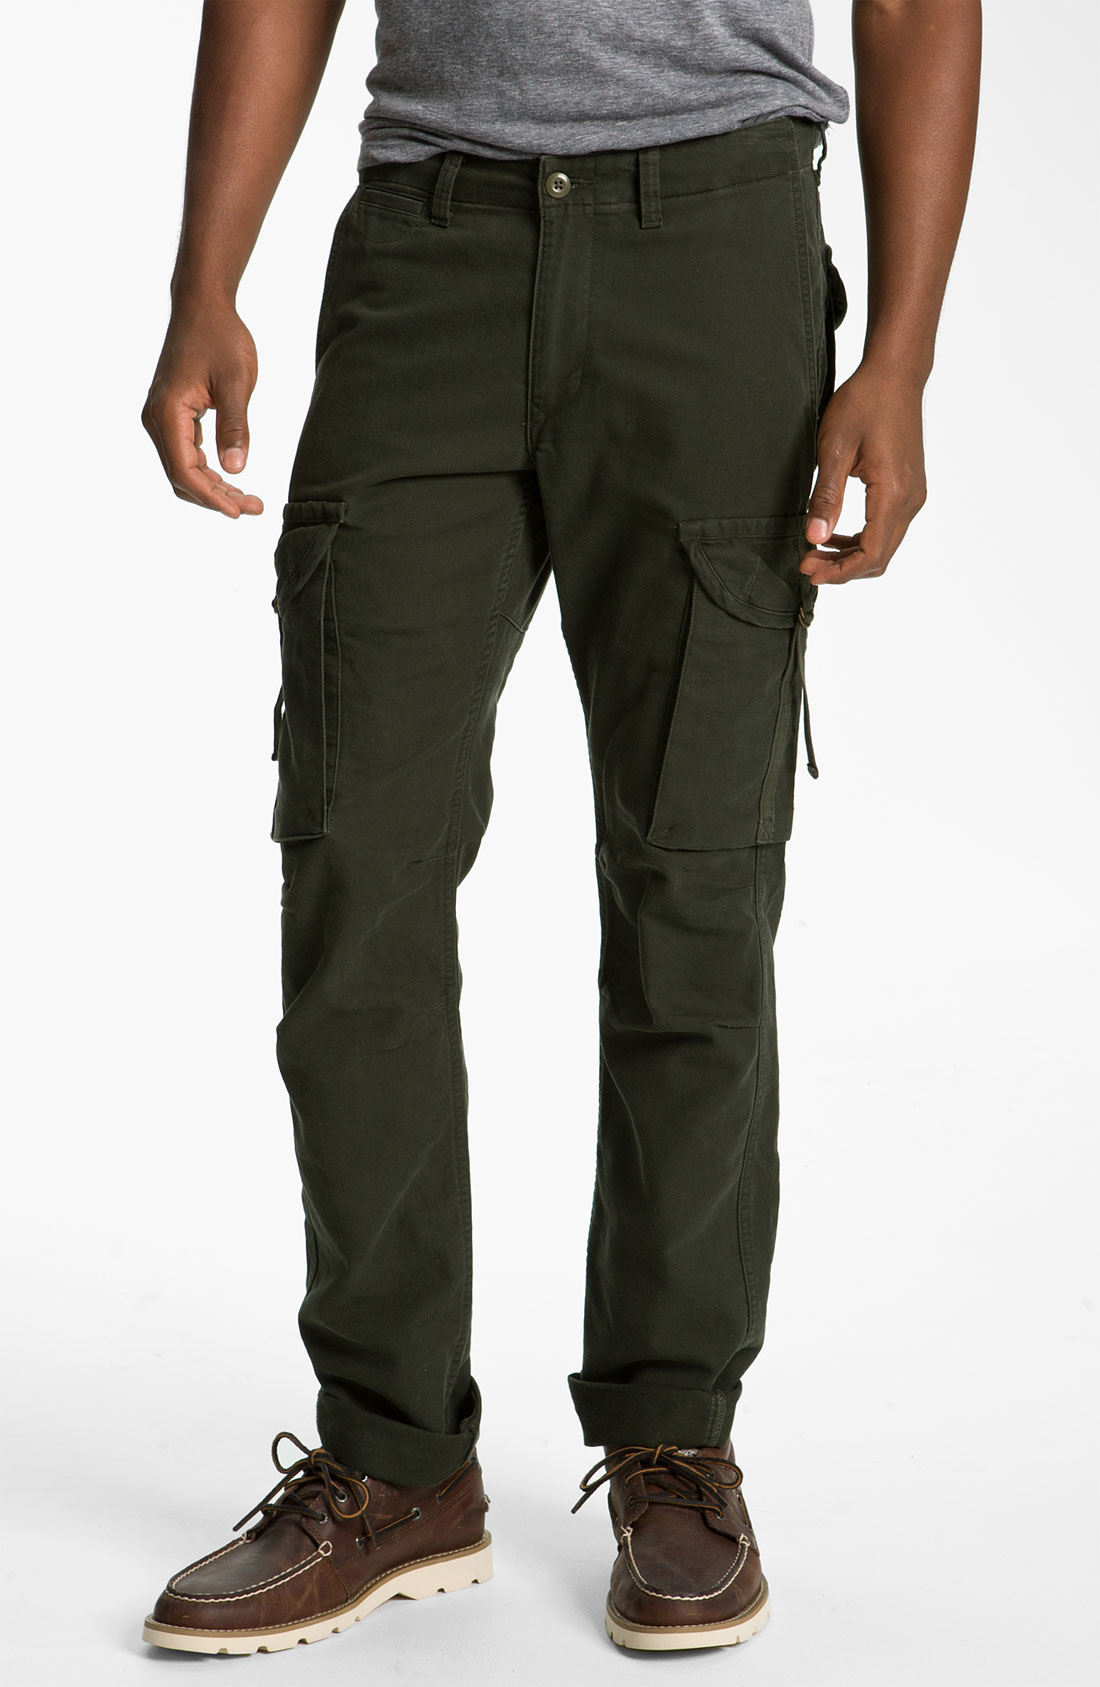 Find great deals on eBay for cargo pants slim. Shop with confidence.